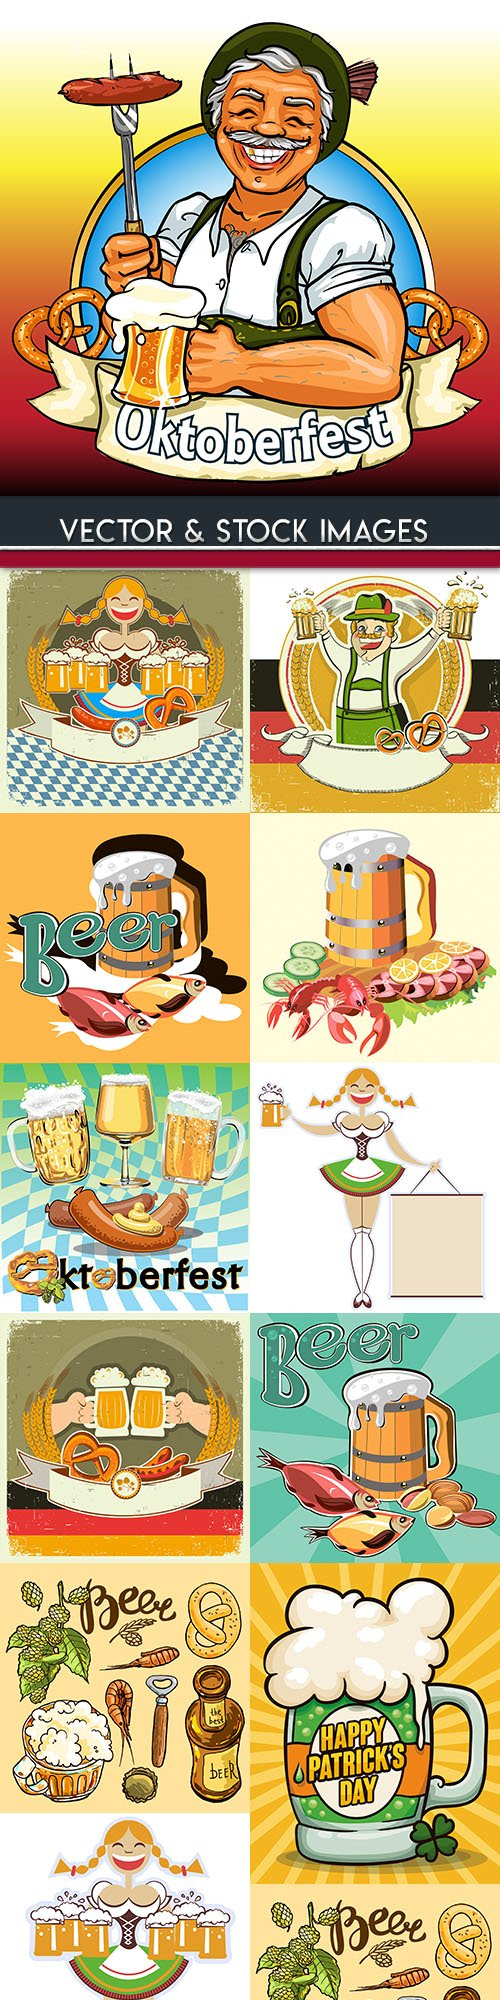 Oktoberfest beer vintage illustration collection